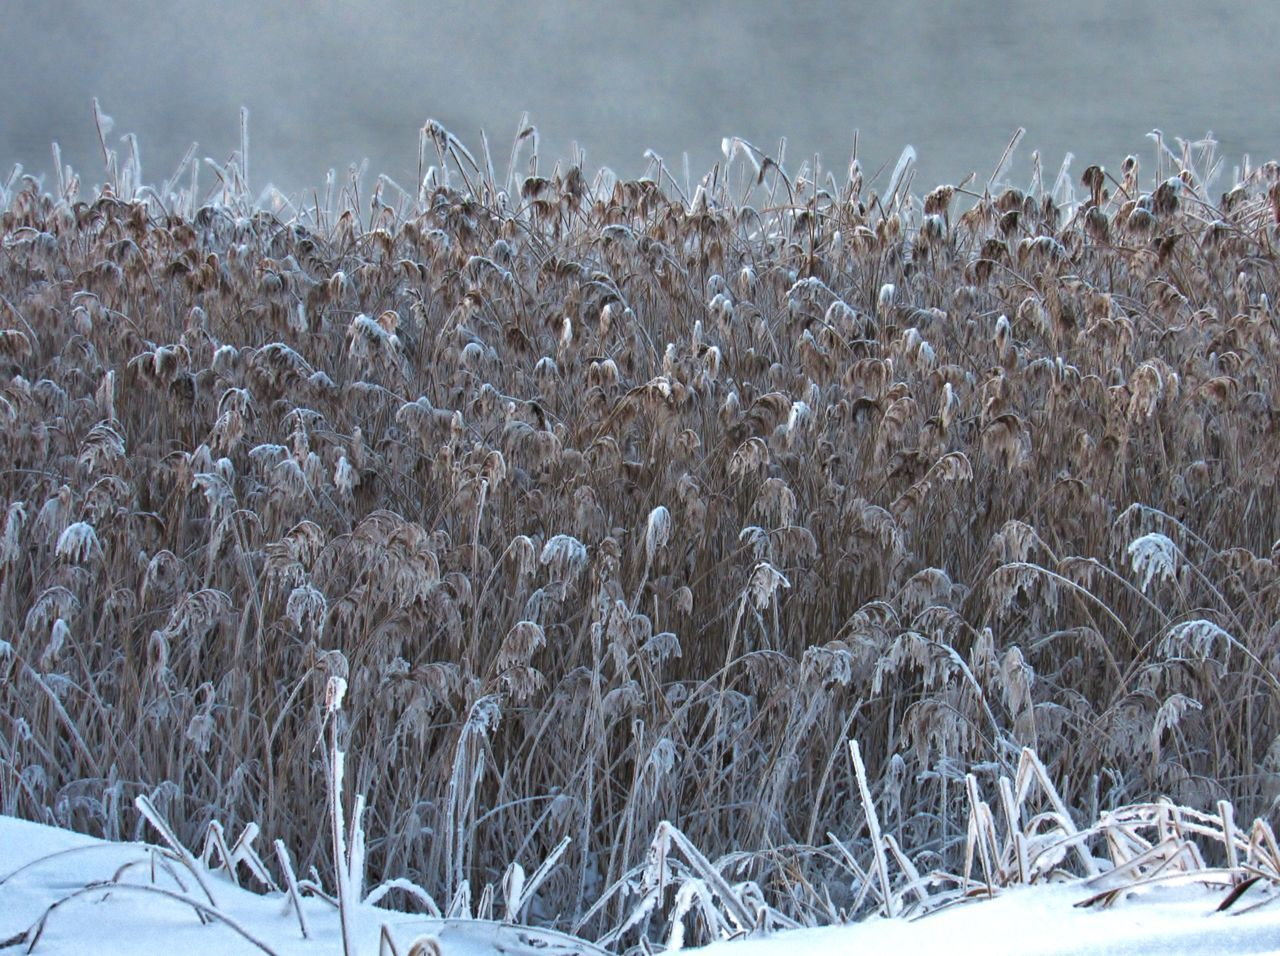 Freezing cane. Beauty In Nature Cane Coast Cold Cold Temperature February Fog Foggy Foggy Morning Freezing Frost Frozen Frozen Nature Melancholic Landscapes Nature Nature Nature Photography Nature_collection No People Outdoors Reeds Riverside Snow Thick Winter